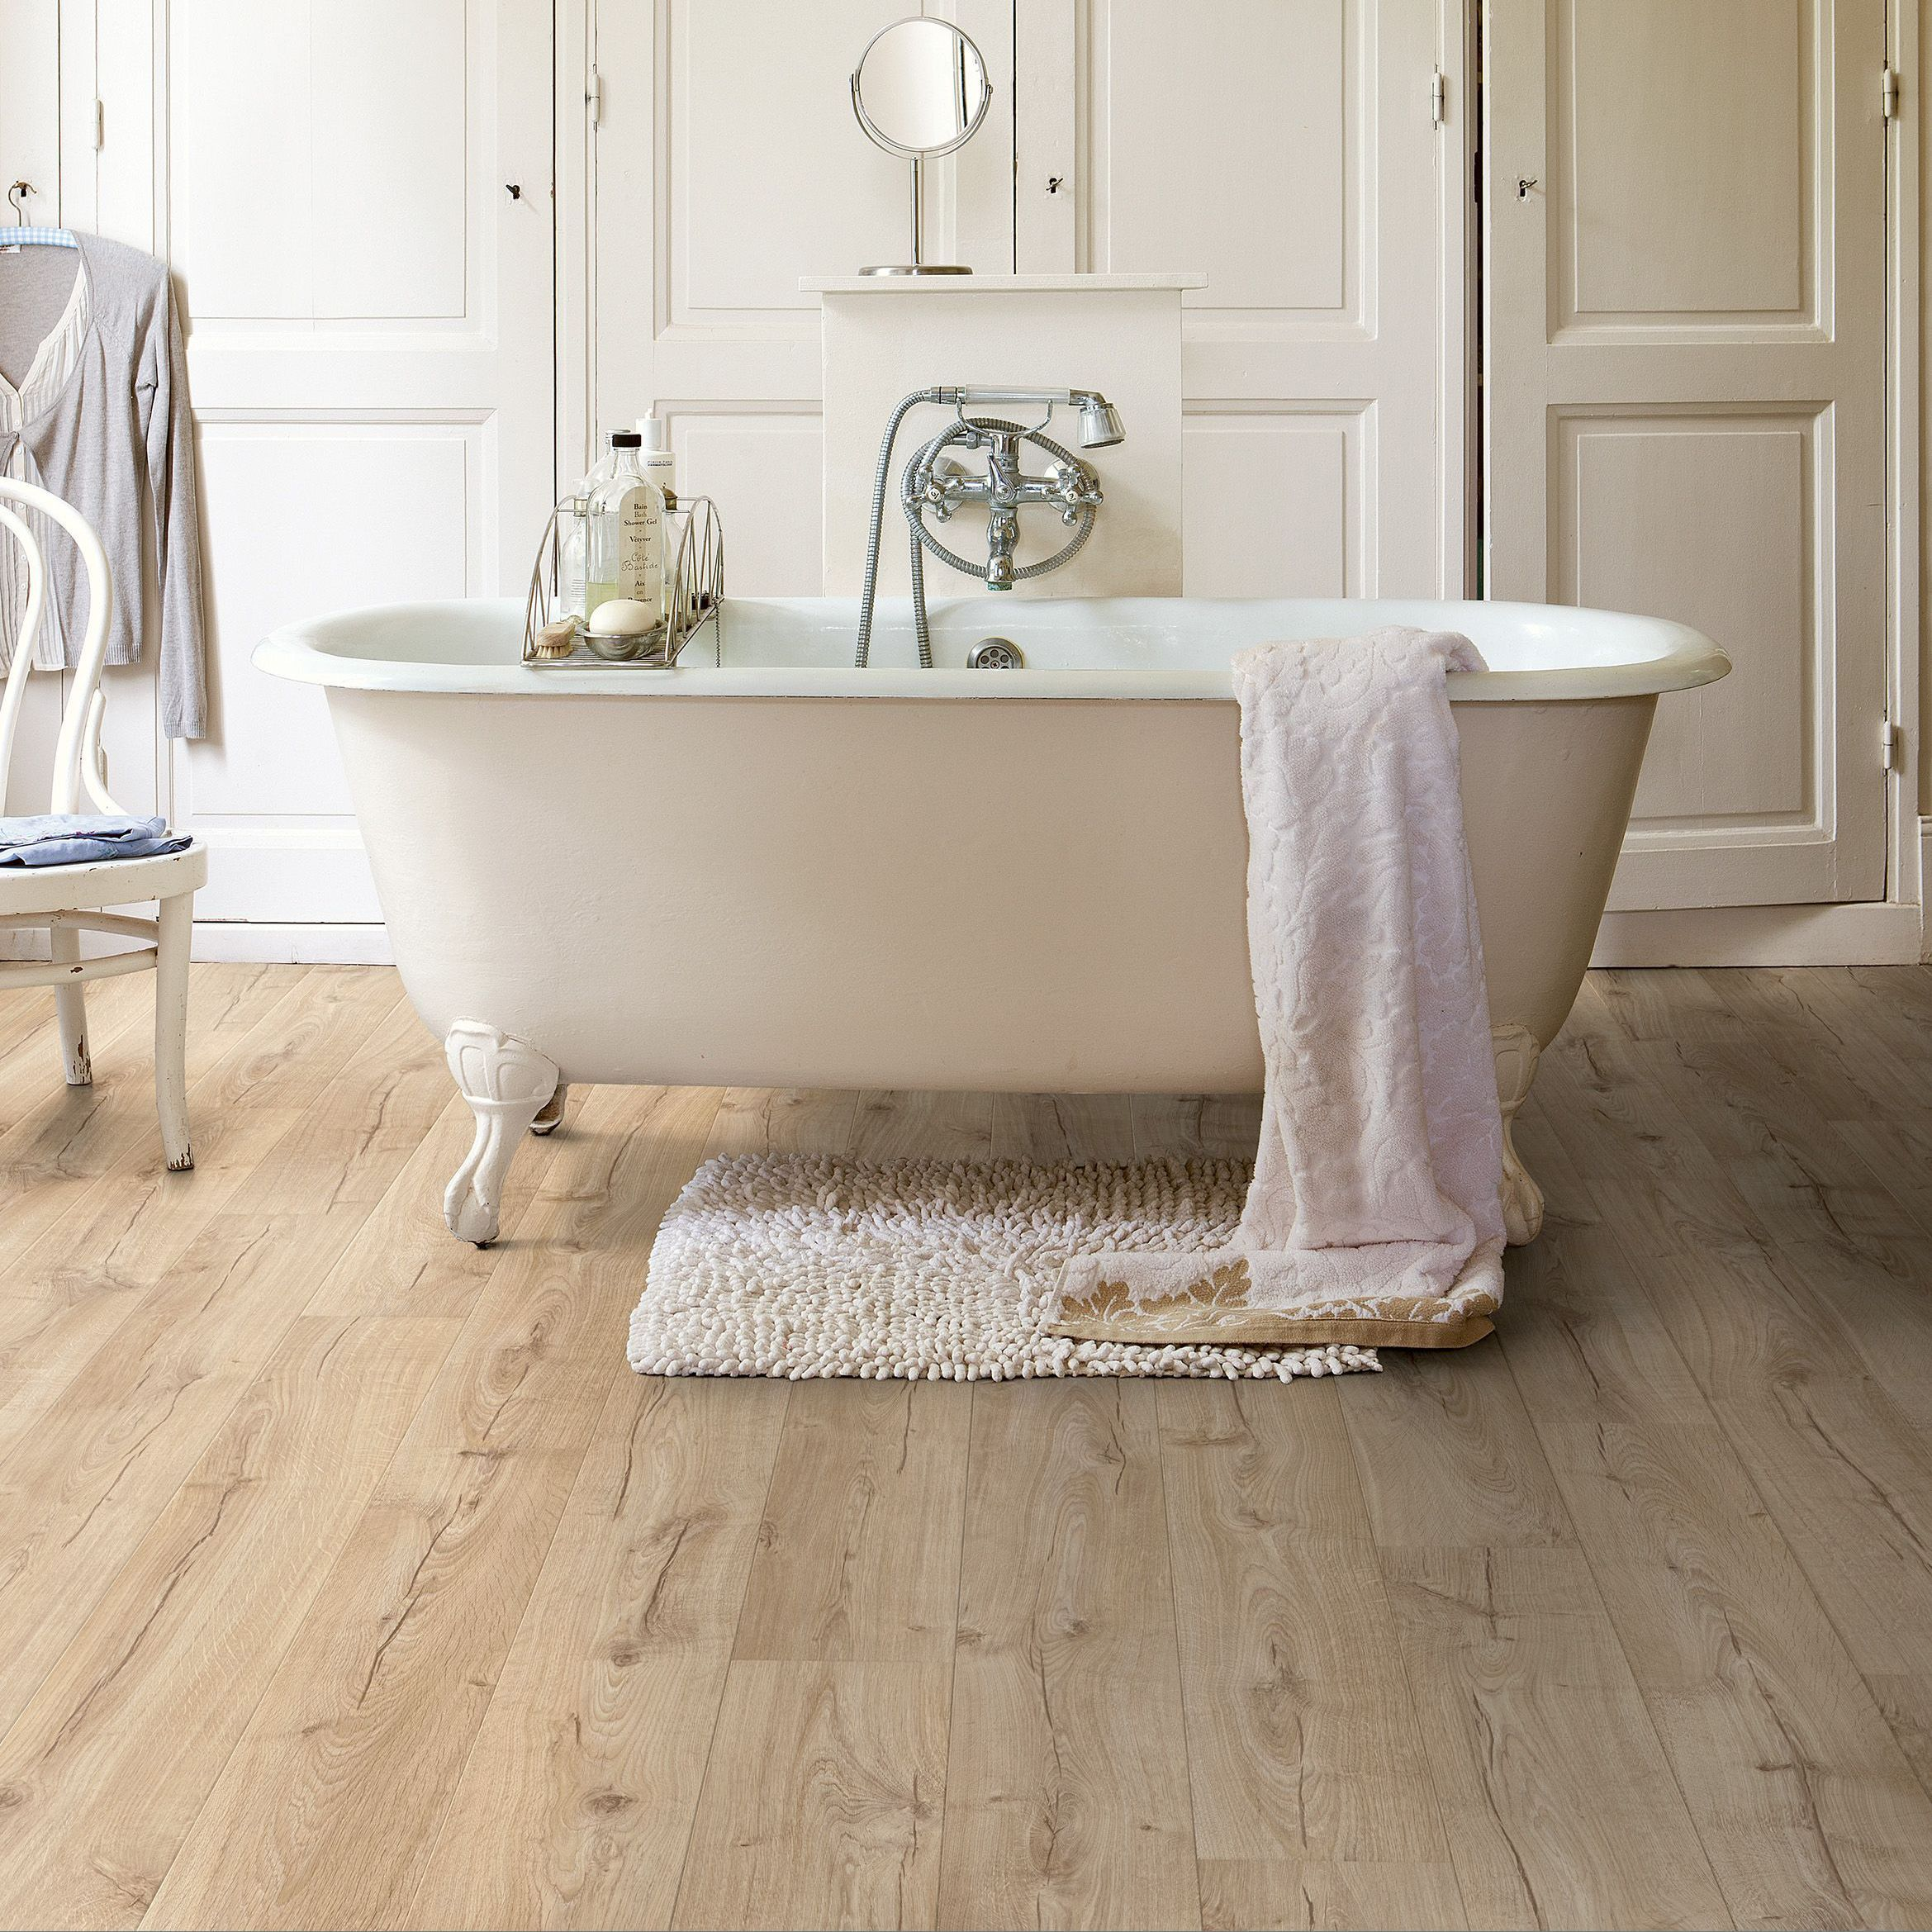 QuickStep Aquanto Natural Oak Effect Laminate Flooring 1